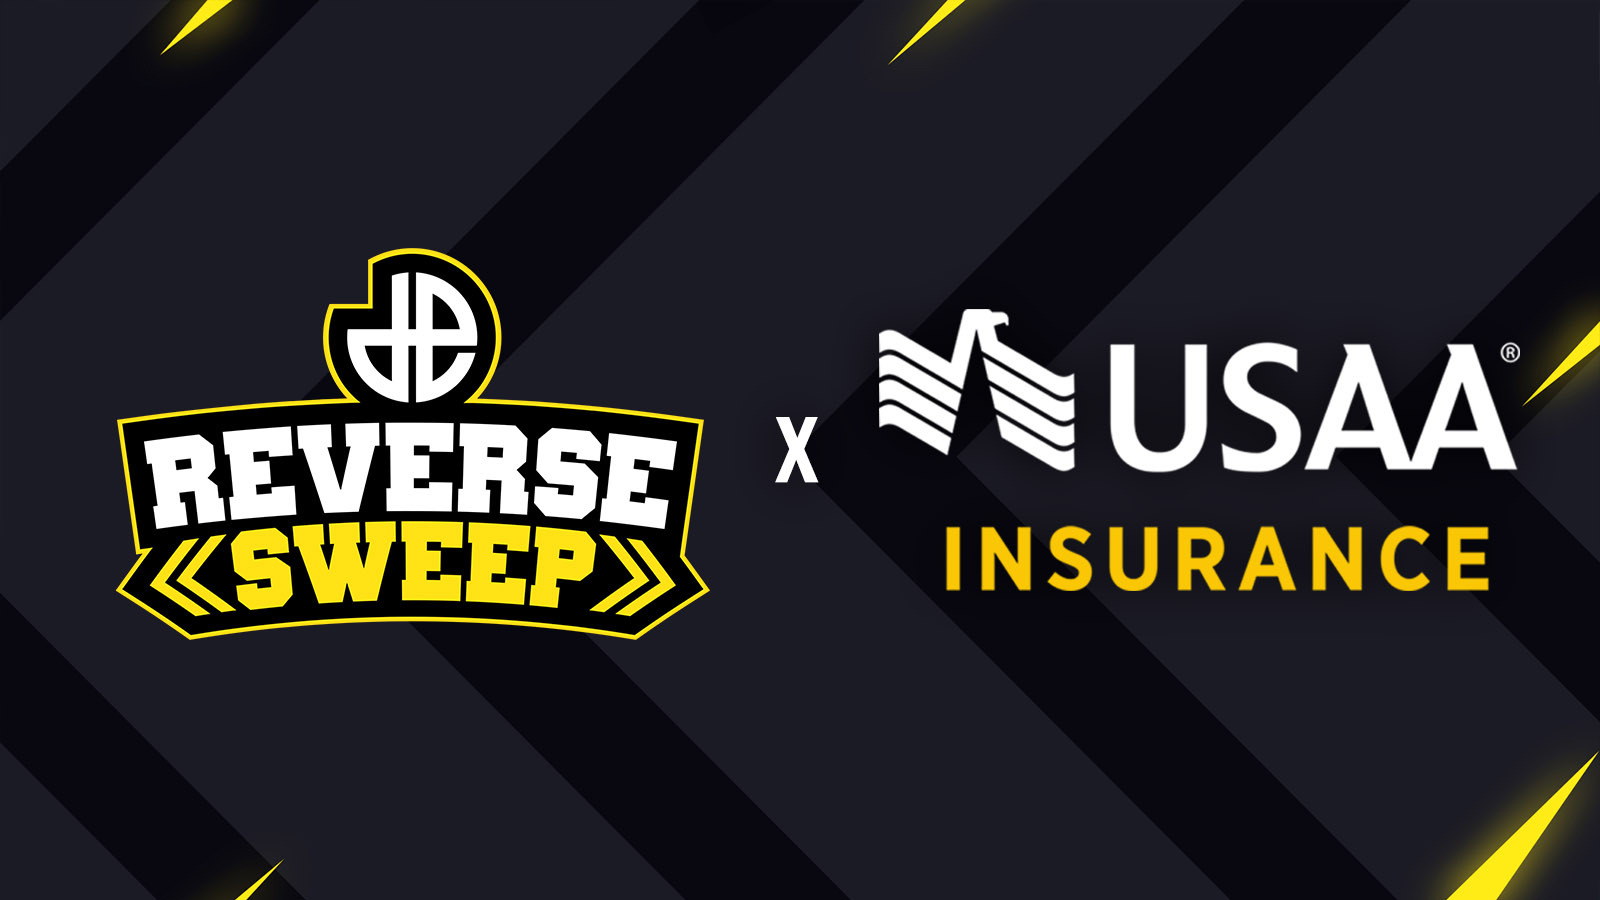 Dexerto bolsters Call of Duty League coverage with USAA Insurance partnership